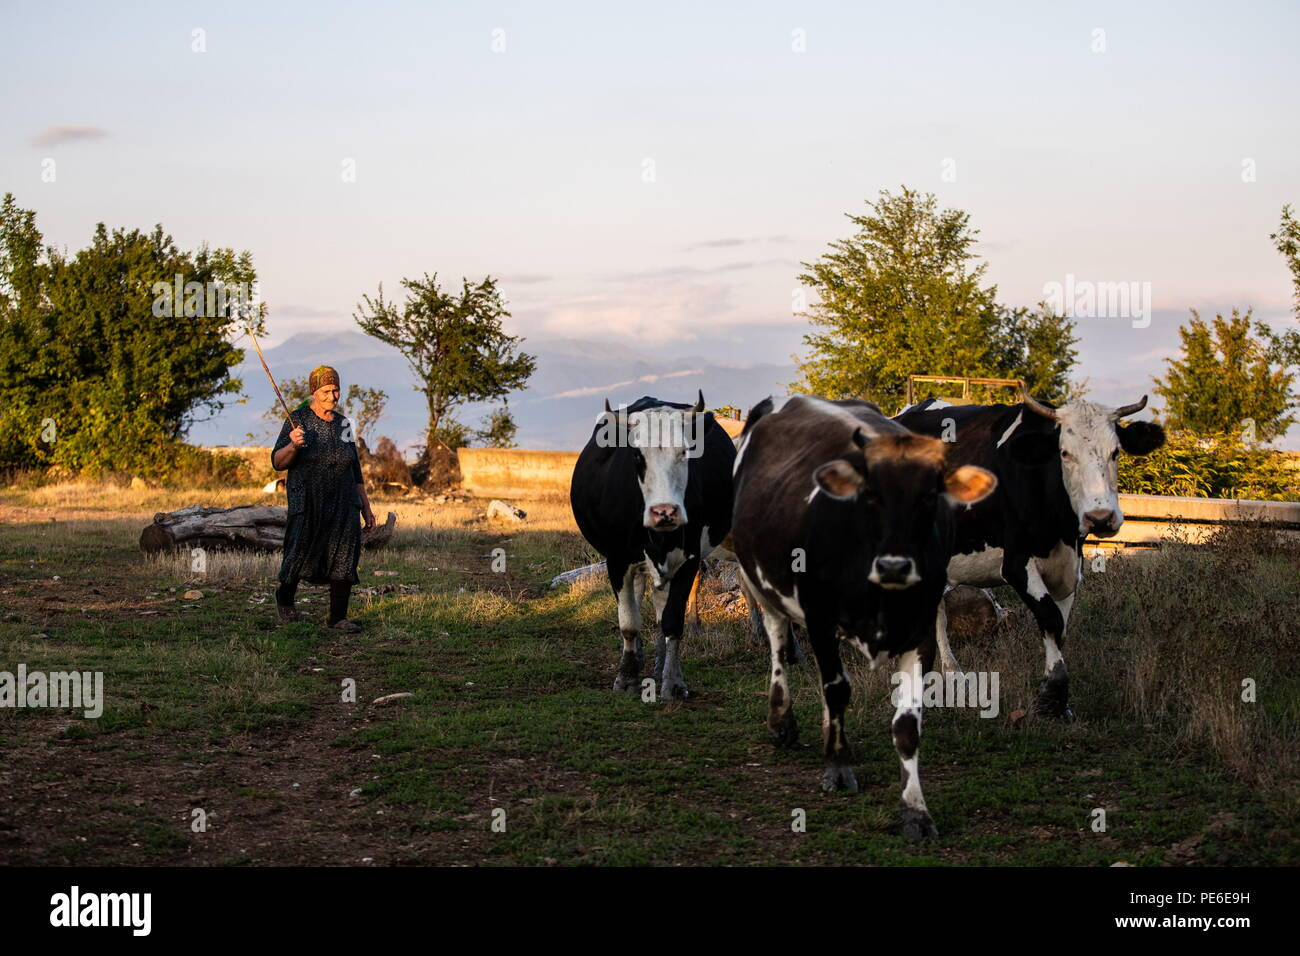 South Ossetia. 12th Aug, 2018. SOUTH OSSETIA - AUGUST 12, 2018: Margarita Madzigova, 63, grazes cows in the village of Khetagurovo, Tskhinvali District, South Ossetia; Margarita and her husband Alikhan have been running a farm since their house was restored after the 2008 South Ossetian-Georgian military conflict. Sergei Bobylev/TASS Credit: ITAR-TASS News Agency/Alamy Live News - Stock Image